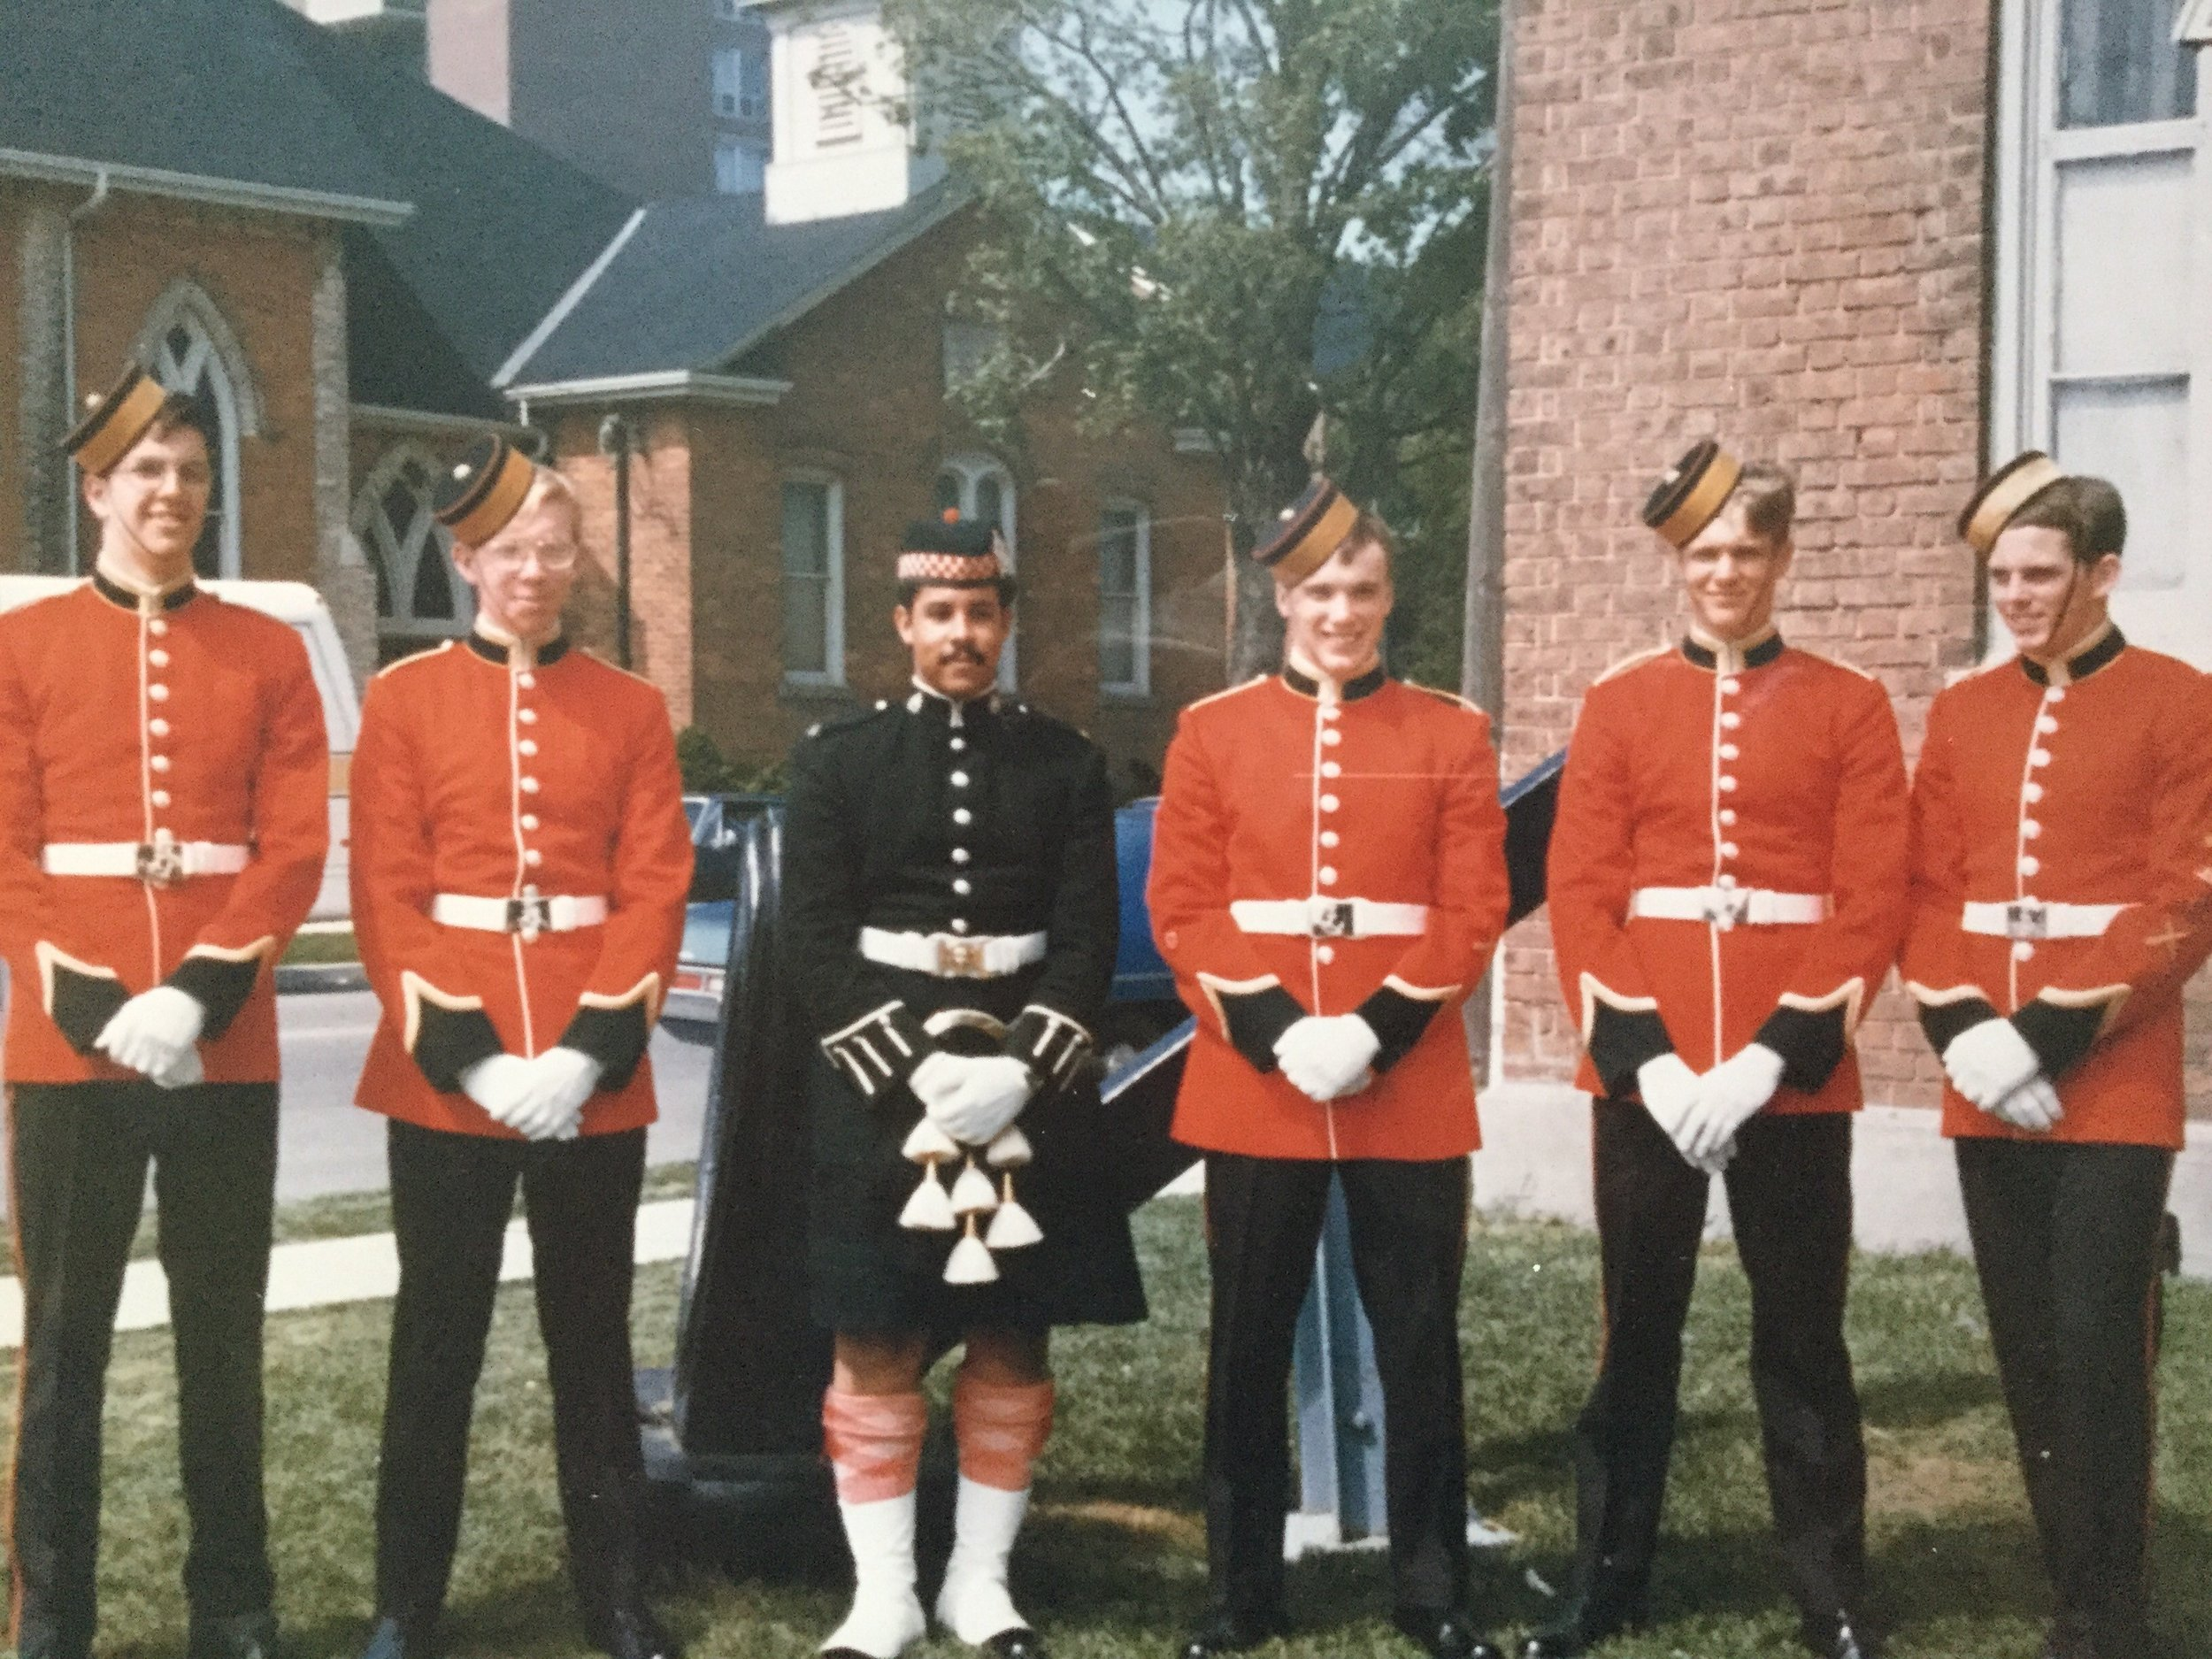 on the front lawn of rcscc iron duke in burlington, where they had all been sea cadets, this is Richard, along with Chris Willmes (Class of 79) , sidney sutherland (rhli - royal hamilton light infantry), steve bate (CMR), ian yeates (Class of 79) and james doherty (Class of 78)